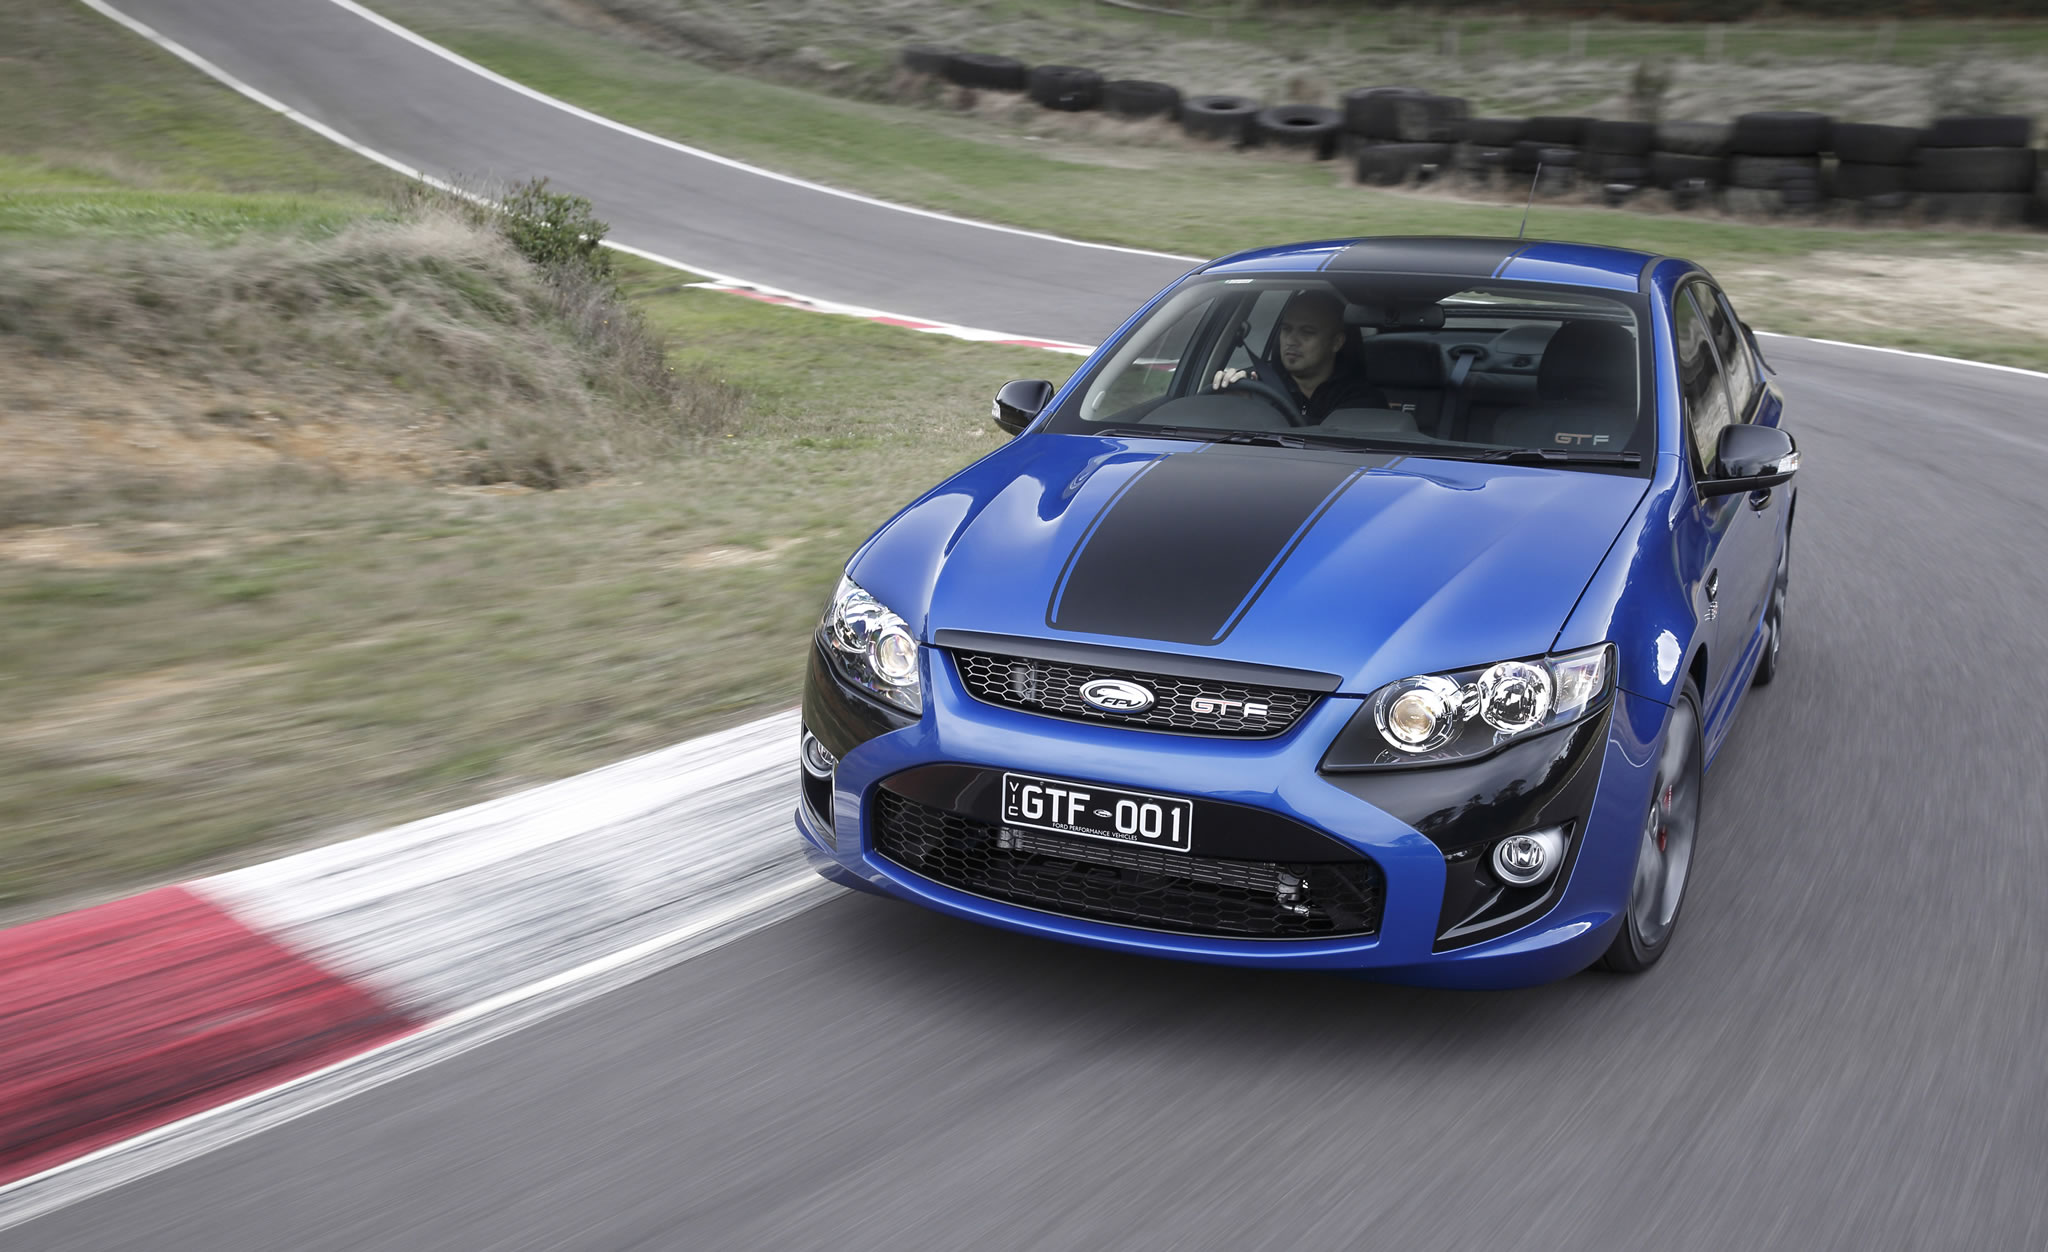 Lykan Car Hd Wallpaper 2014 Ford Fpv Gt F 351 Front Photo Kinetic Color With